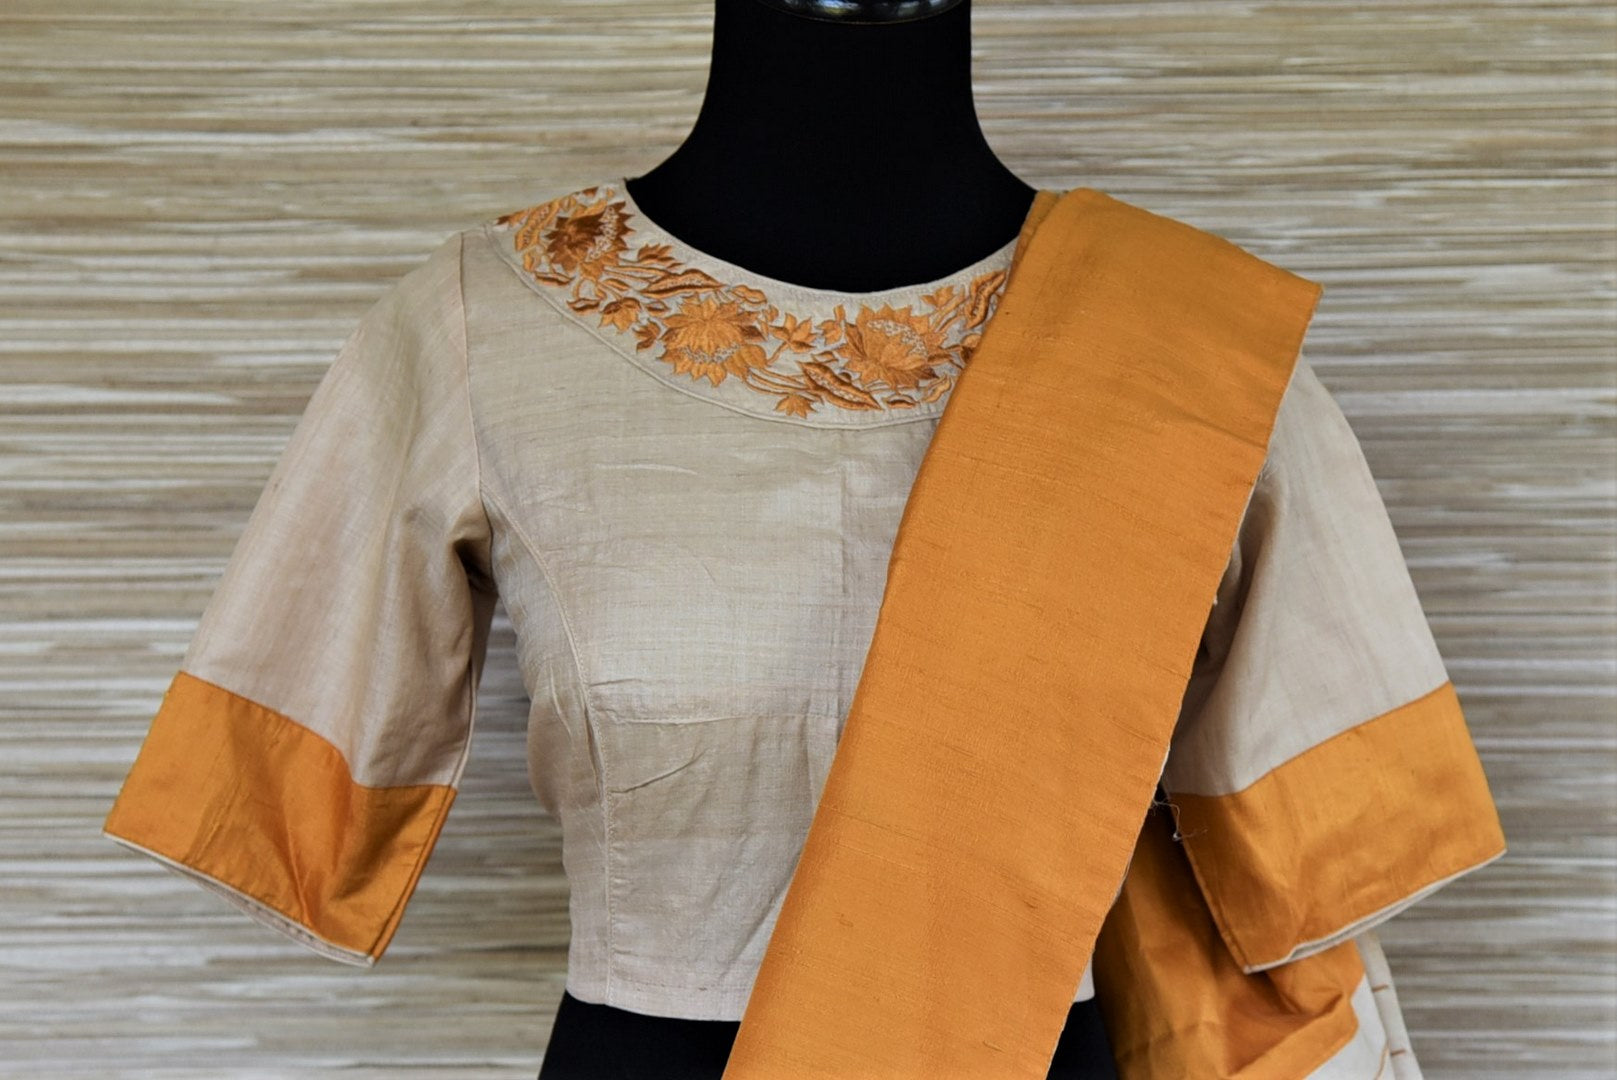 Buy lovely cream color tussar saree online in USA with yellow border and embroidered saree blouse. Grab exquisite handwoven sarees, embroidered saris, designer sarees with blouse for the coming festive and wedding season from Pure Elegance Indian boutique in USA. Shop online now.-blouse pallu